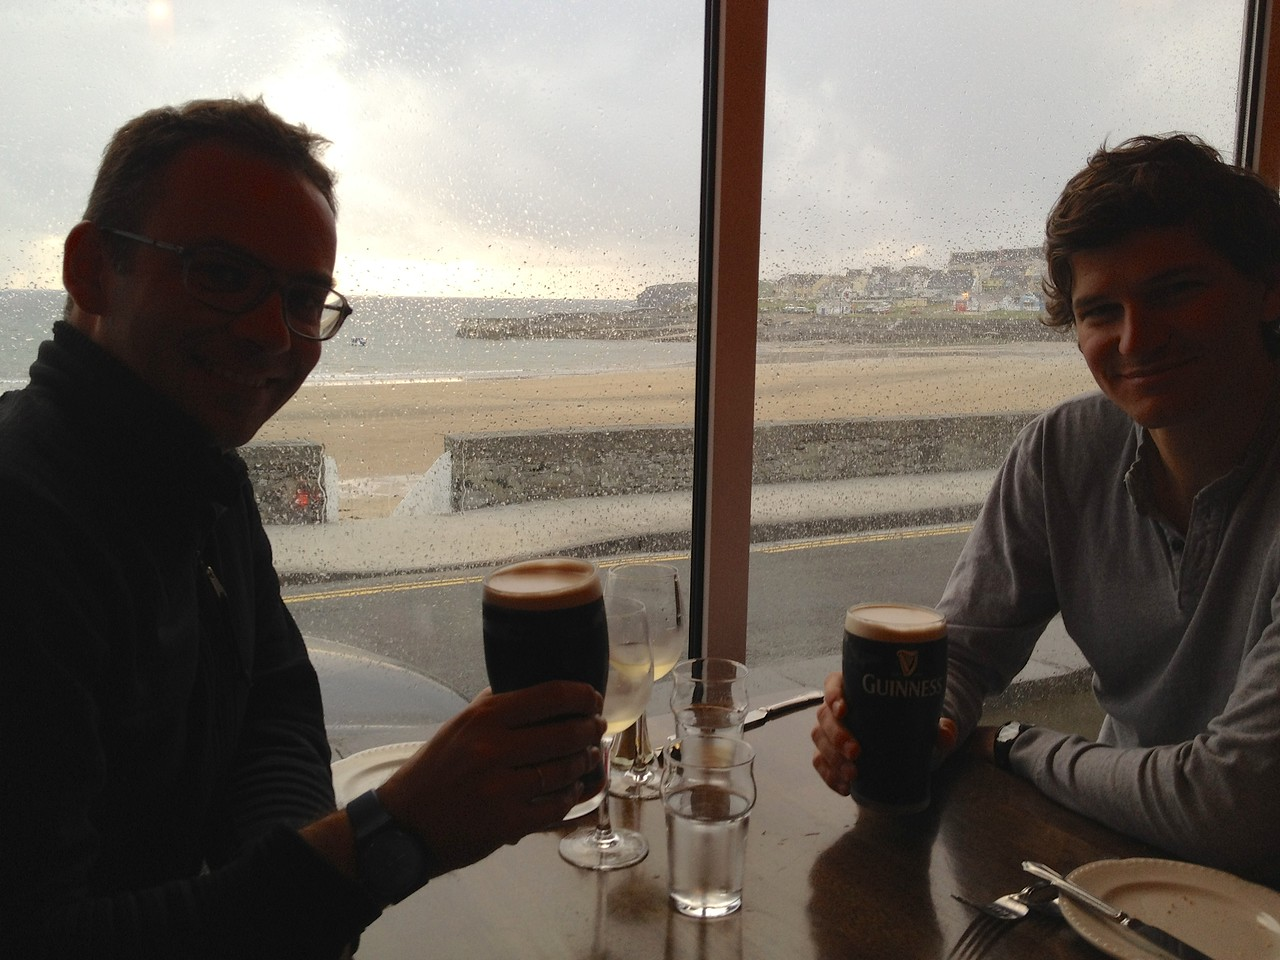 When it's raining, it is a good time to have a Guiness at The Strand